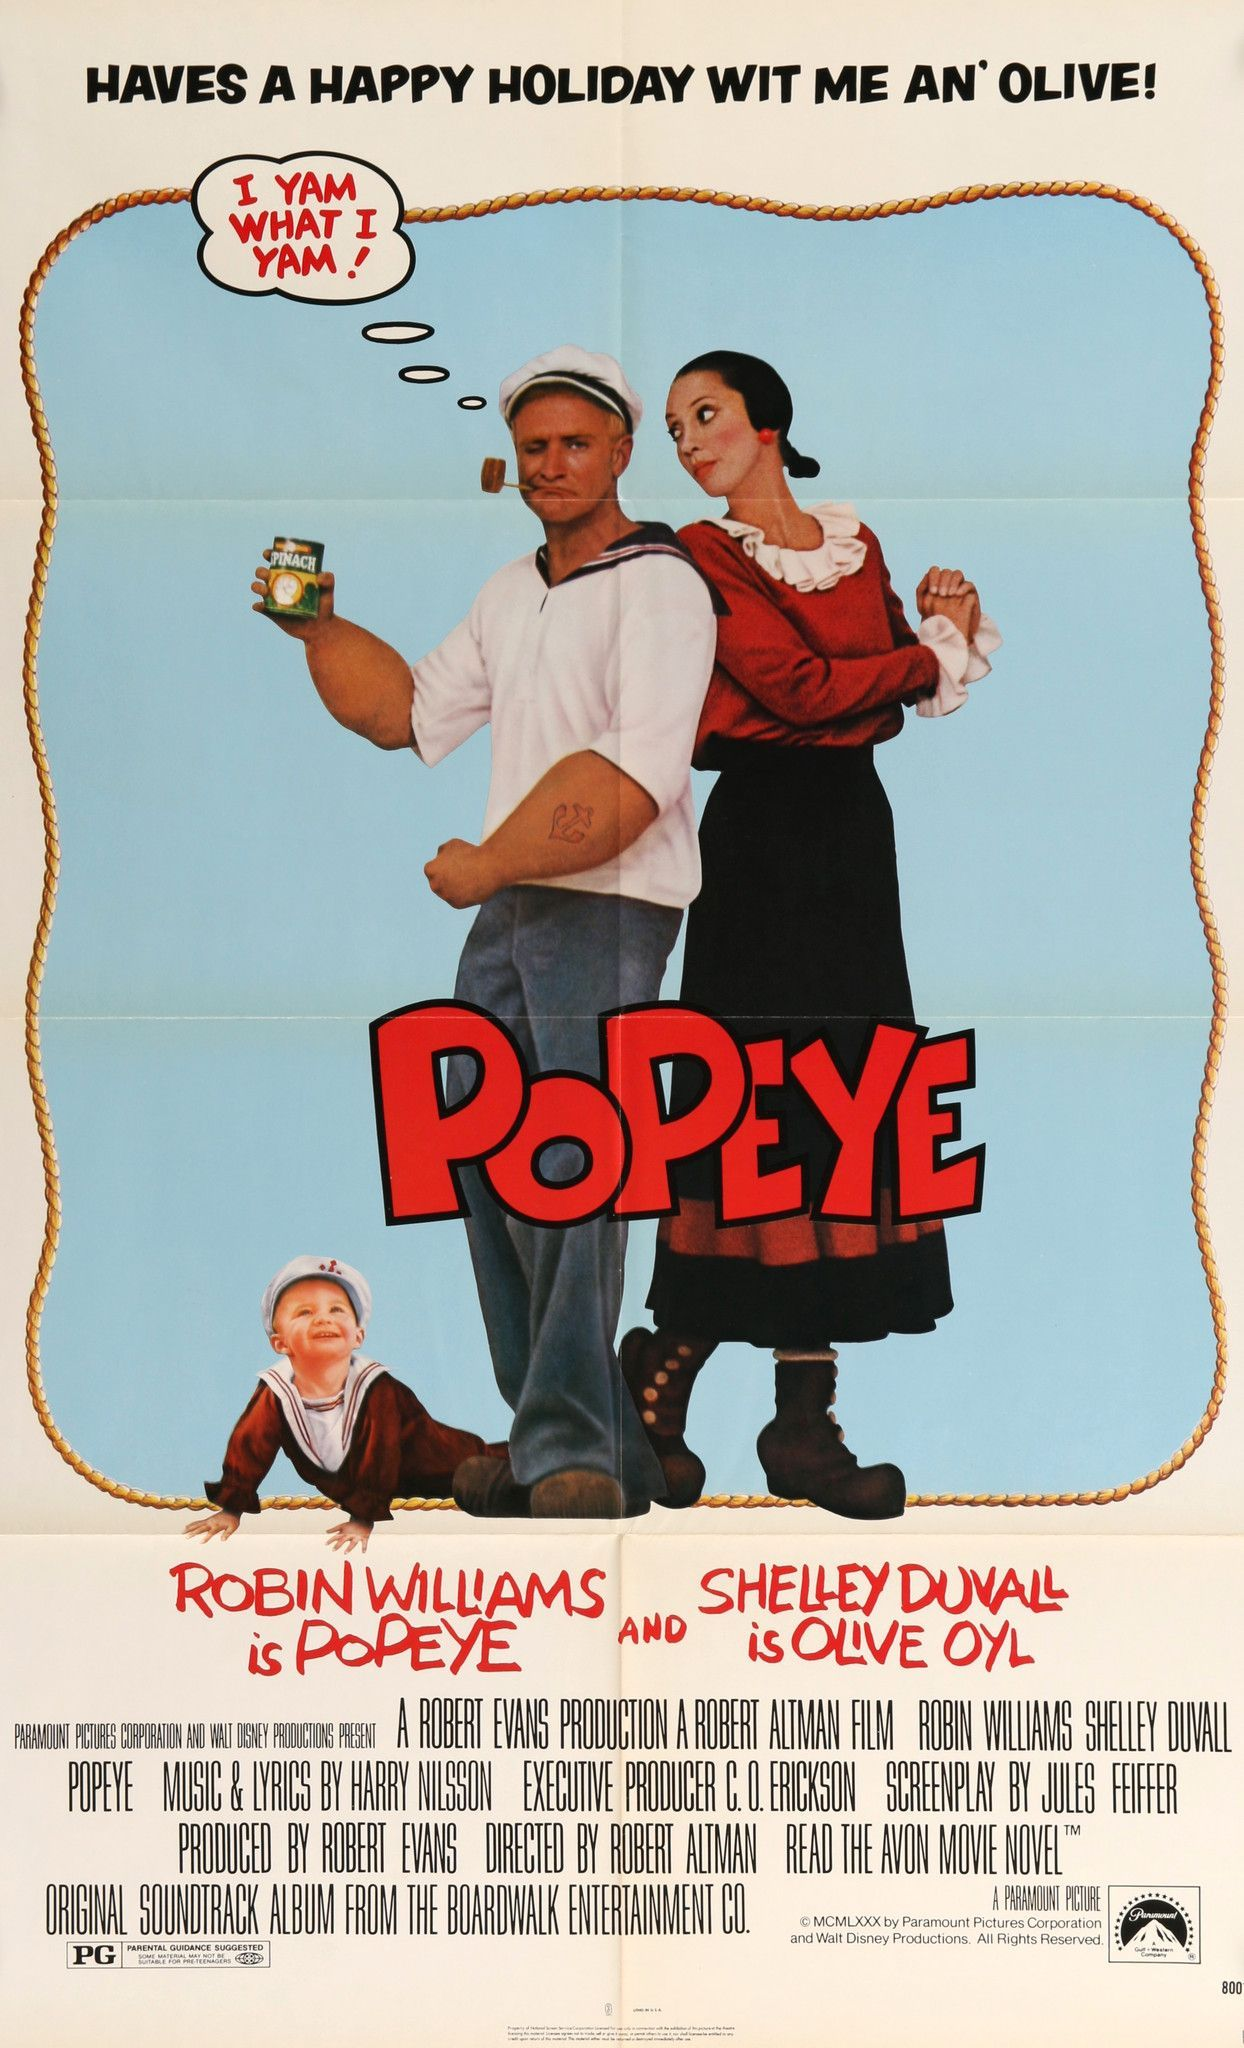 """Film: Popeye (1980) Year poster printed: 1980 Country: USA Size: 27"""" x 41"""" This is a vintage one-sheet movie poster from 1980 for Popeye starring Robin Williams, Shelley Duvall, Ray Walston, Paul Dool"""